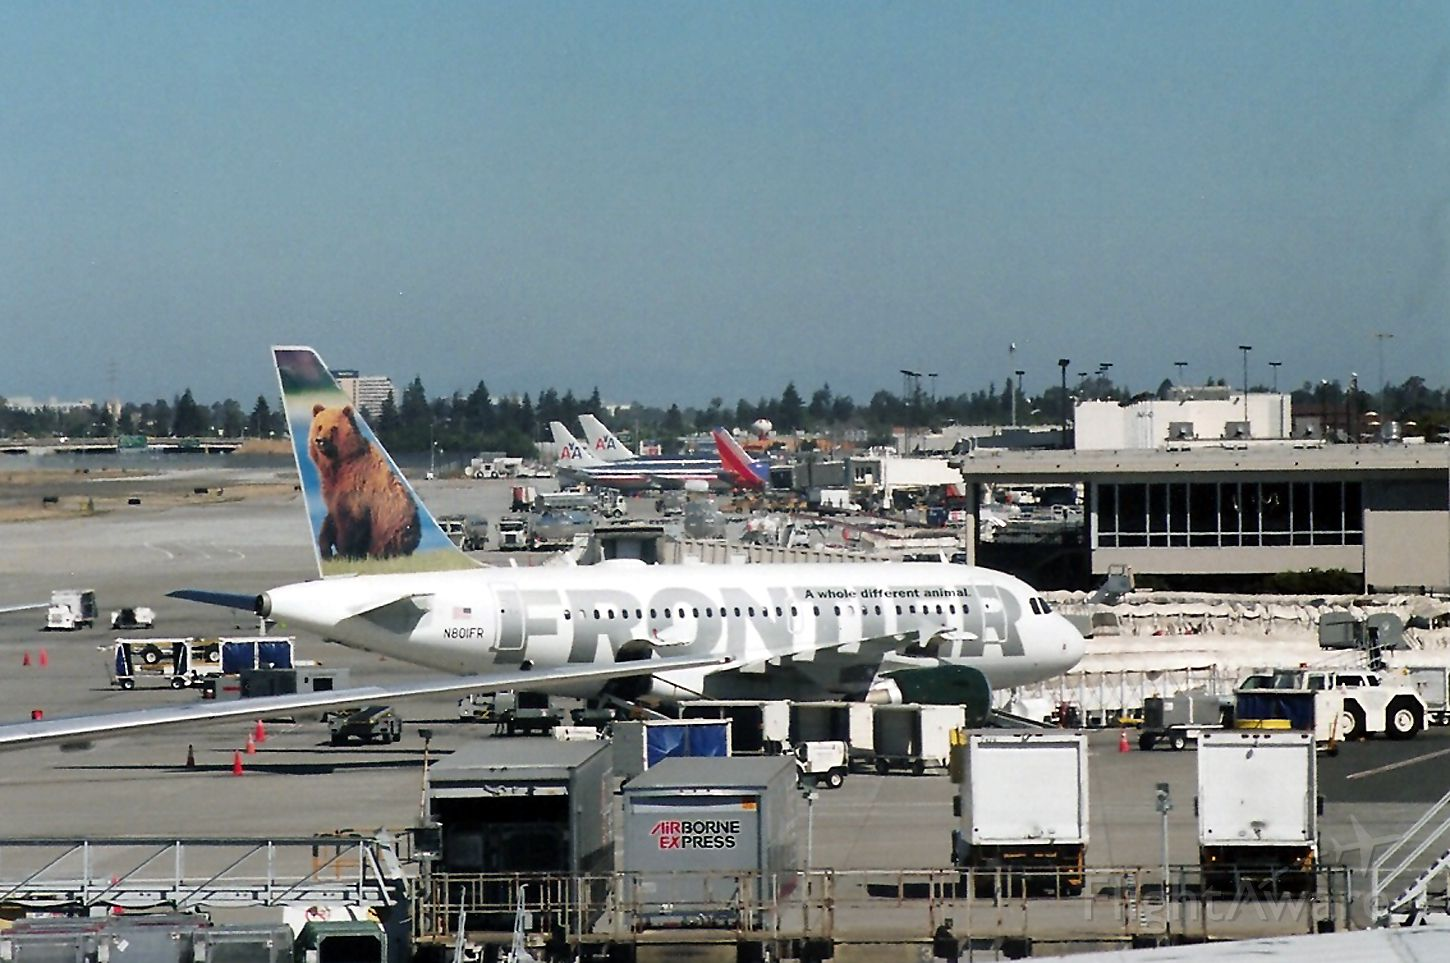 Airbus A318 (N801FR) - KSJC - early AM activity at San Jose - note the old Terminal C and the new Termnal B has not been built yet. View looking north, July 2004